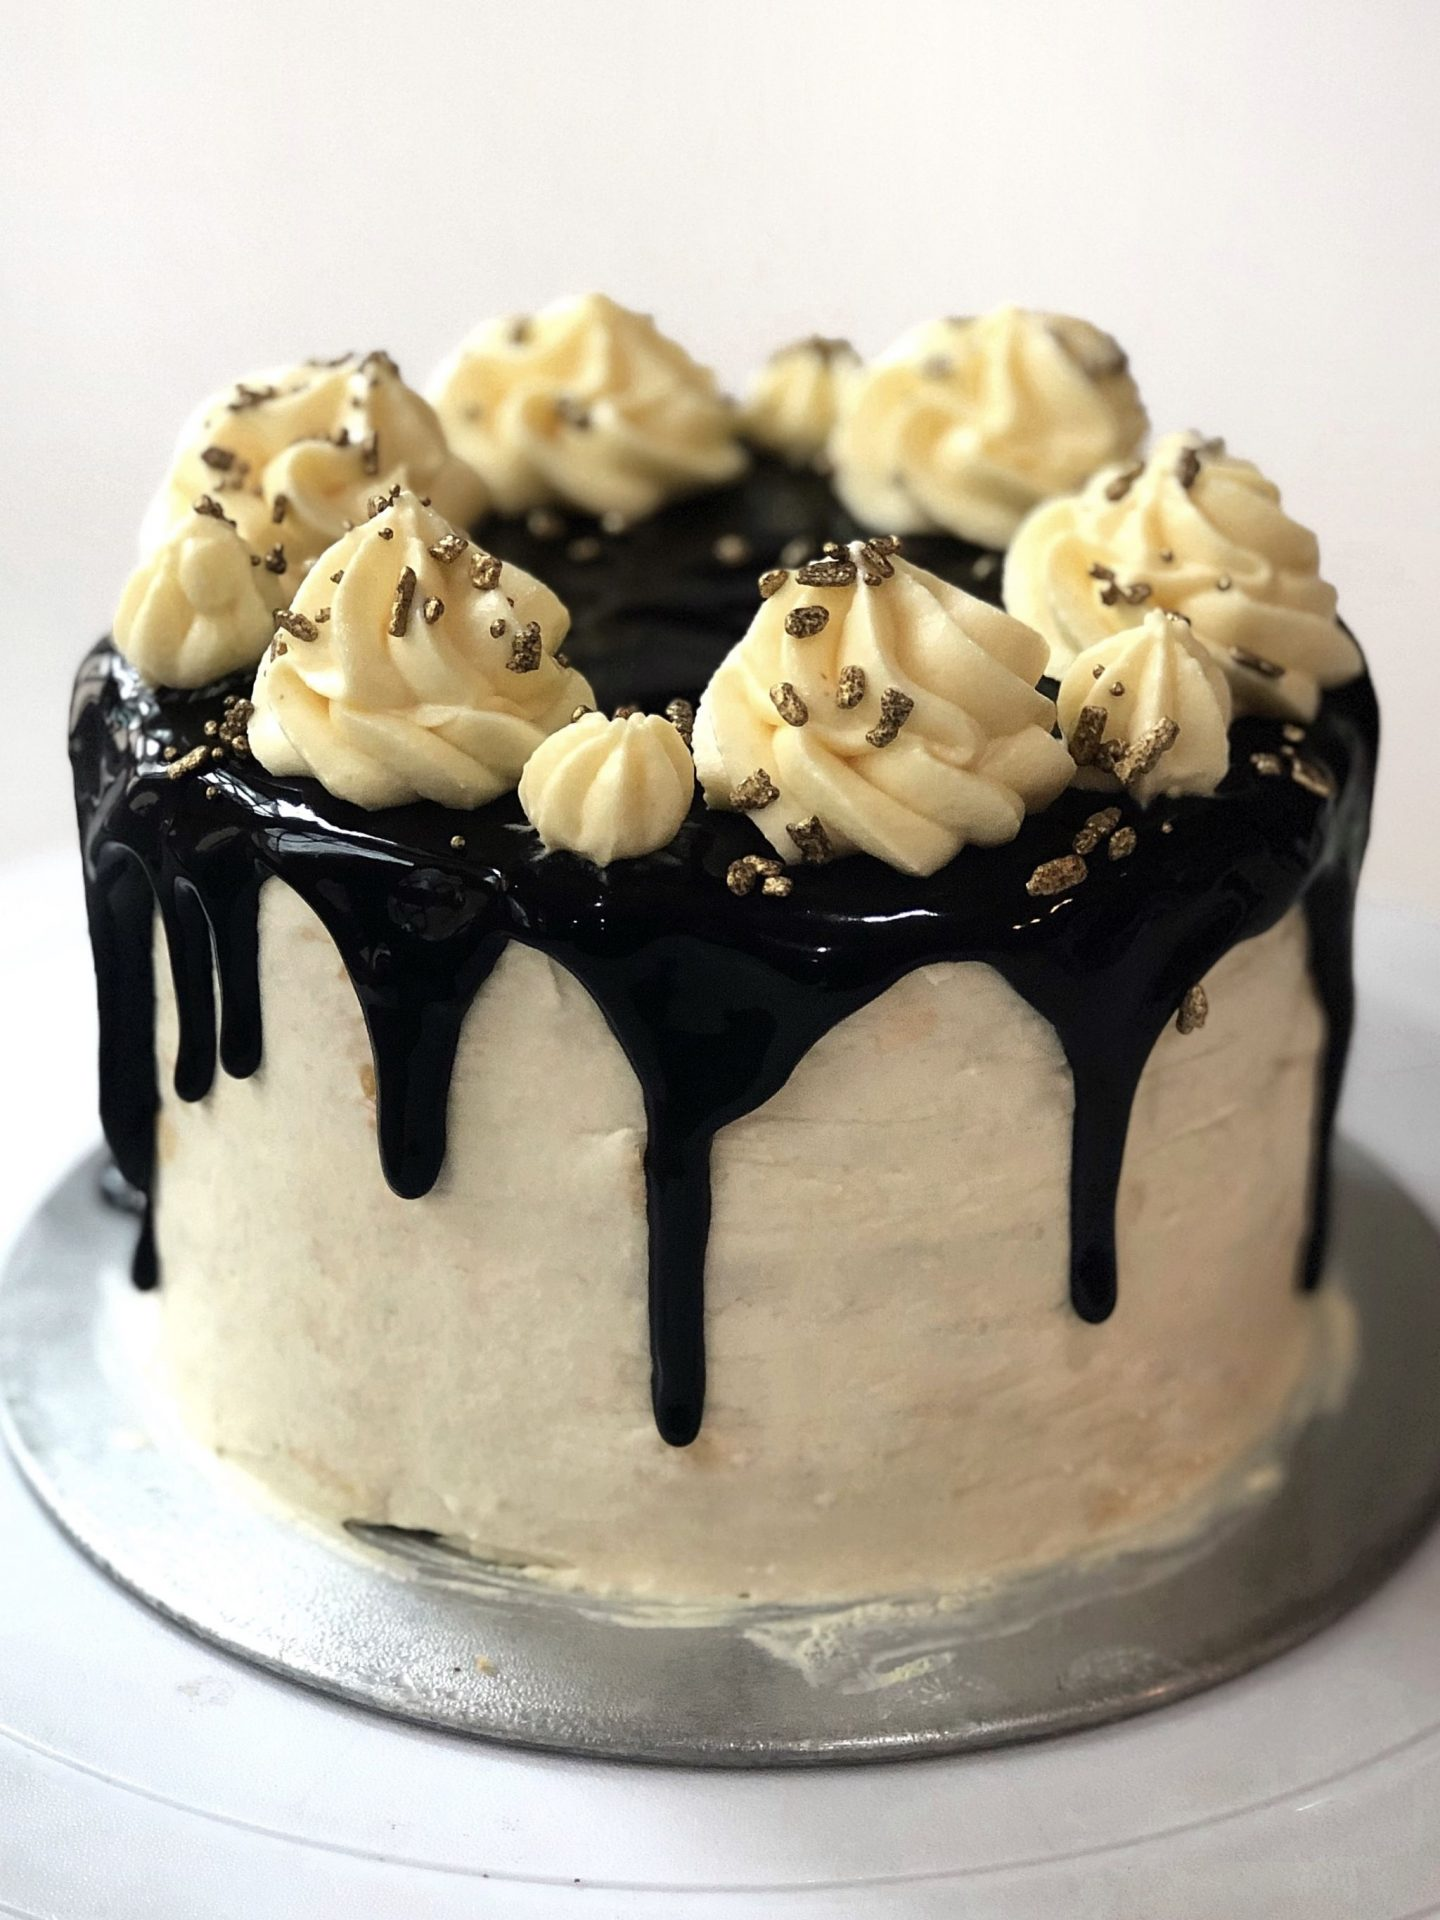 Chocolate Durian Cake